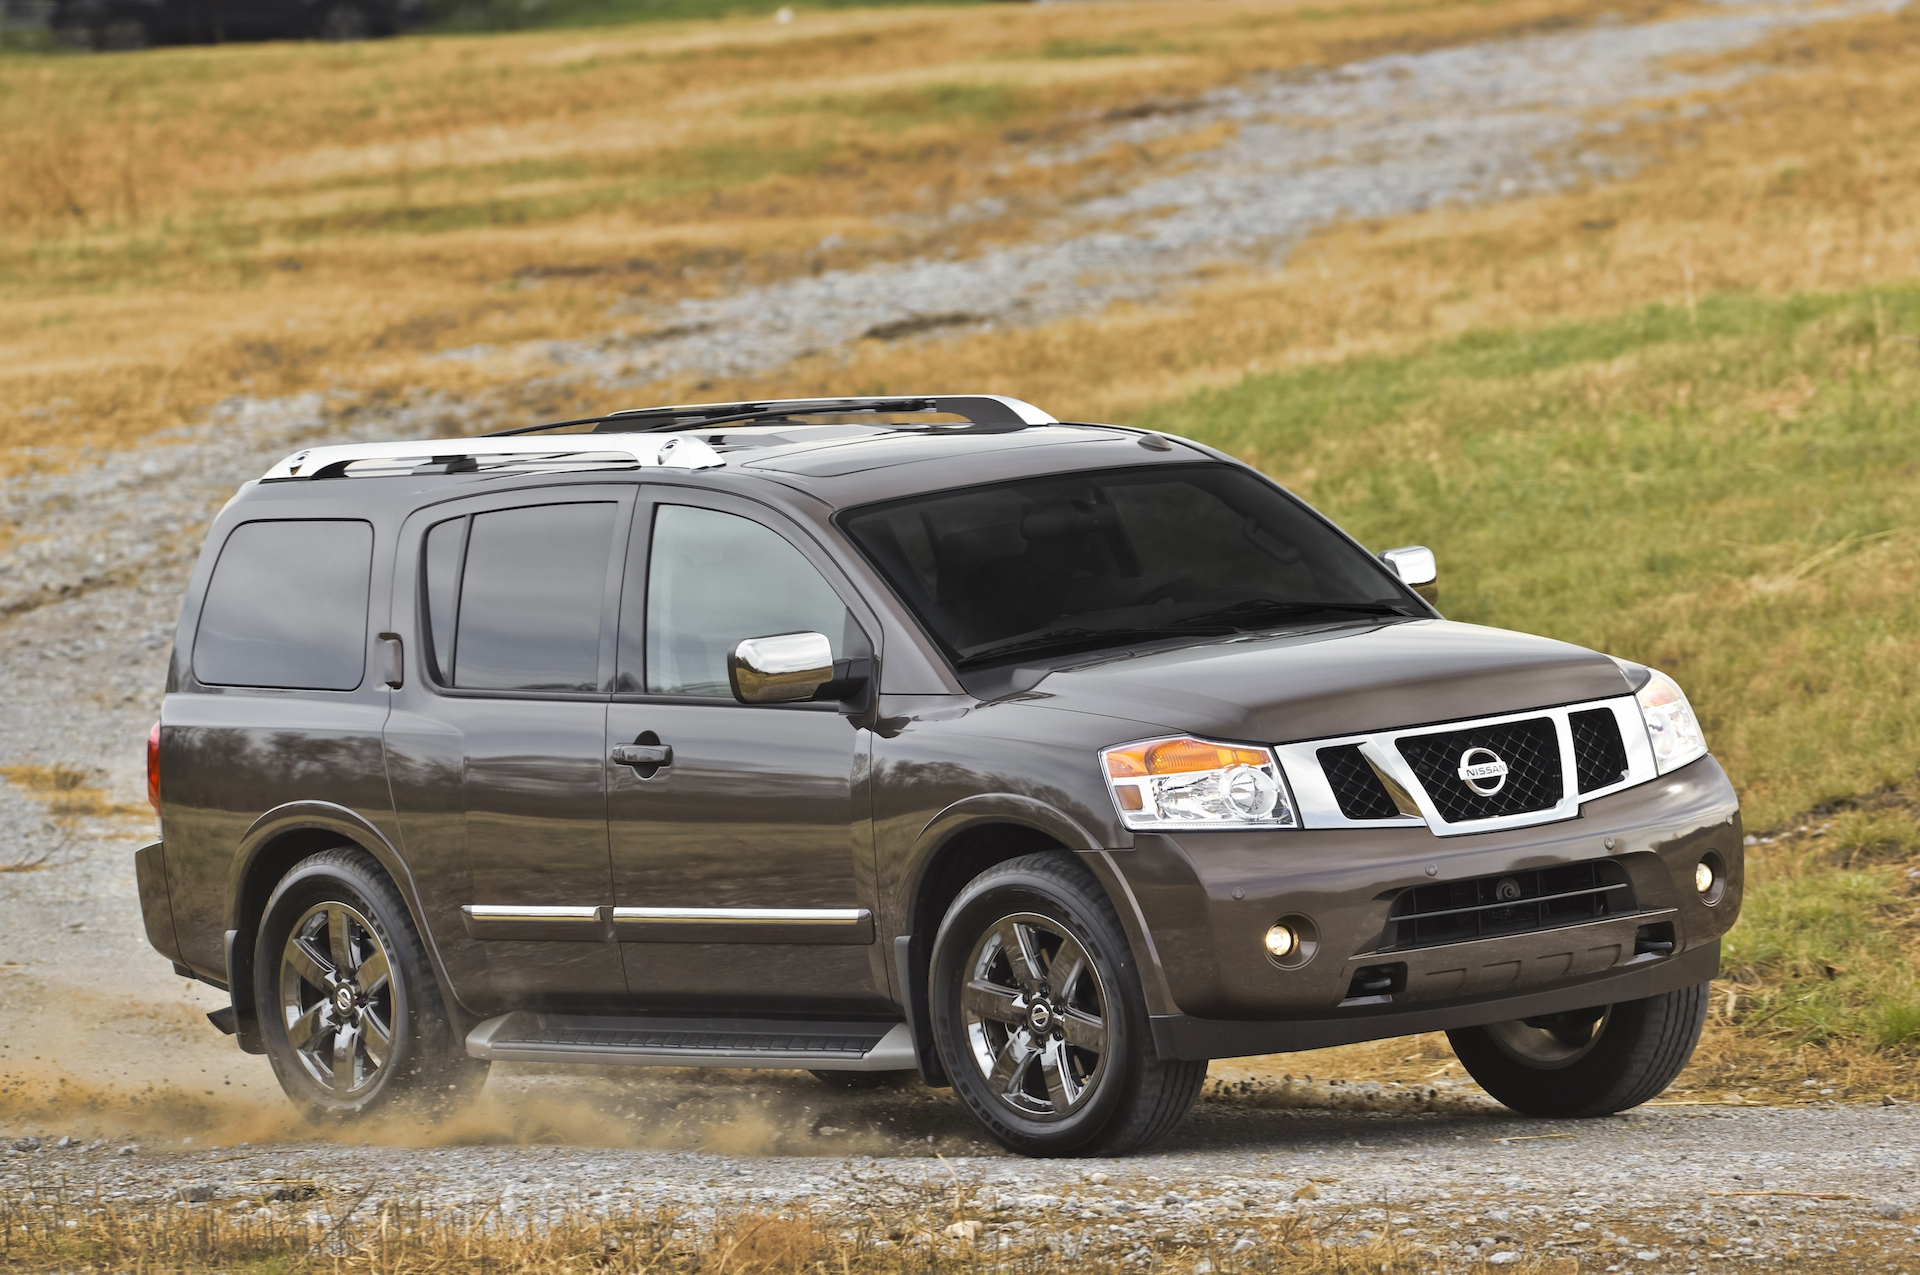 Alfa Romeo Dallas >> 2015 Nissan Armada Review, Ratings, Specs, Prices, and Photos - The Car Connection